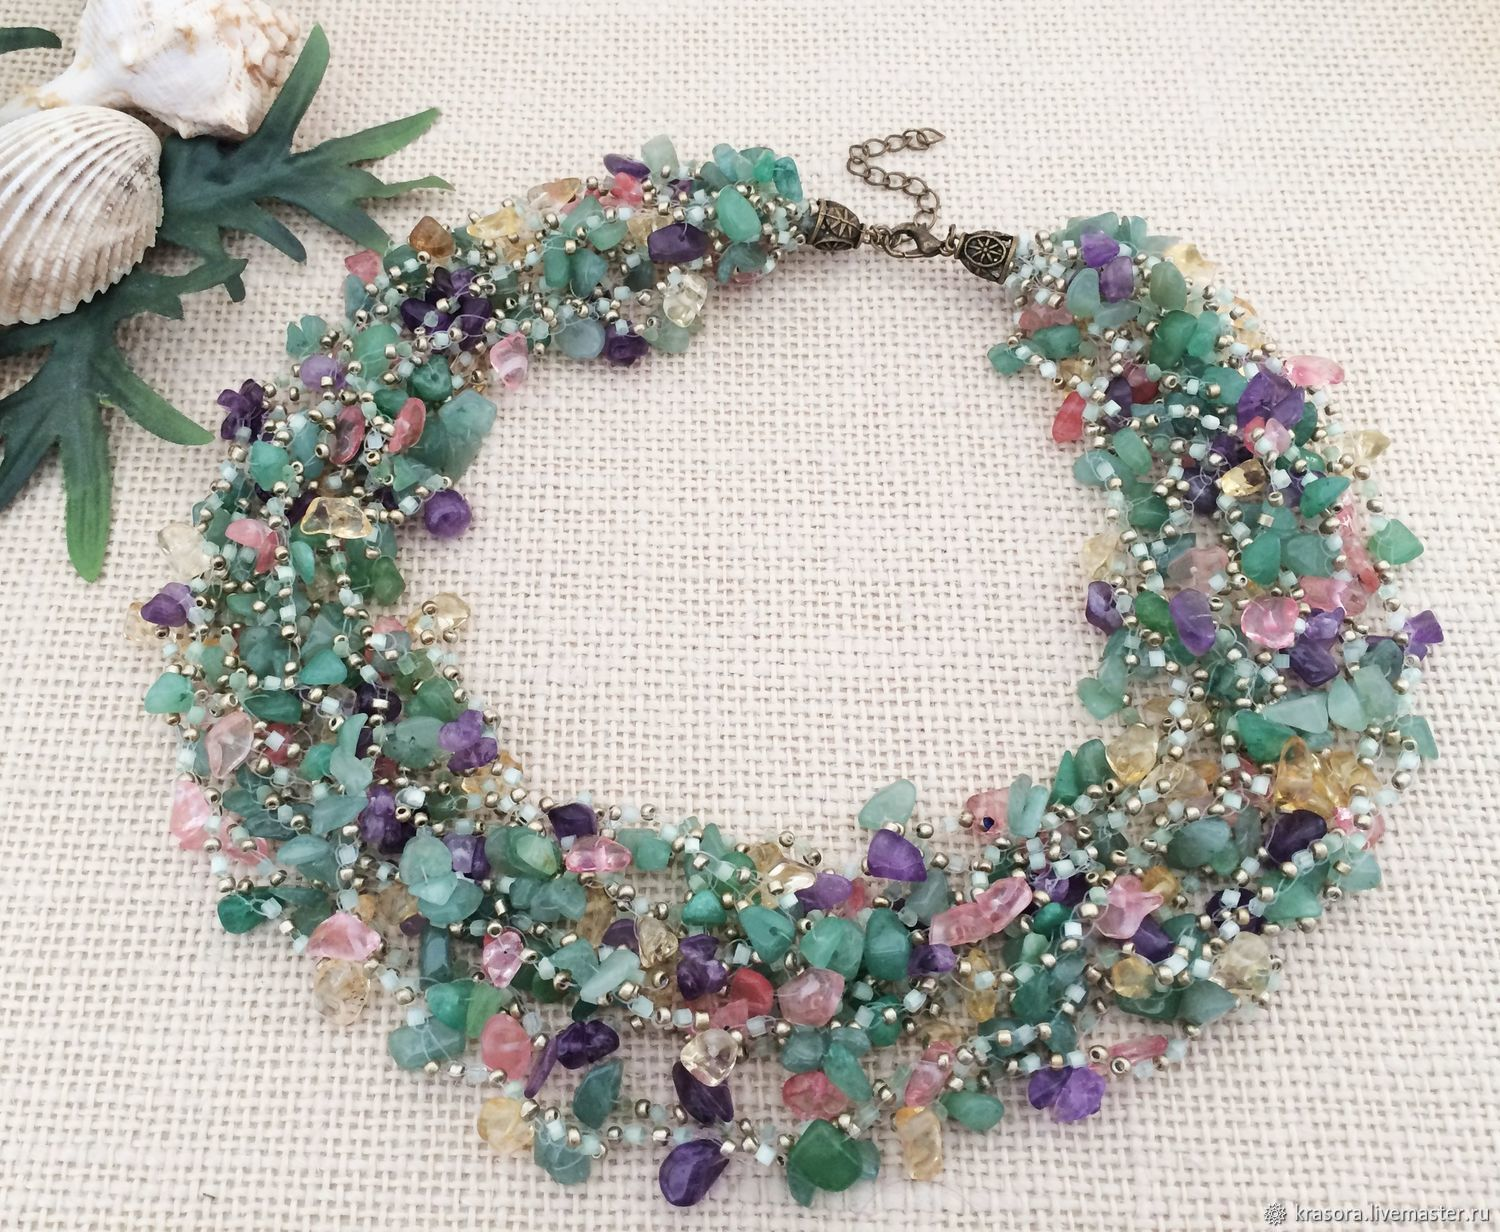 Necklace green jade purple amethyst rose quartz yellow citrine, Necklace, Moscow,  Фото №1